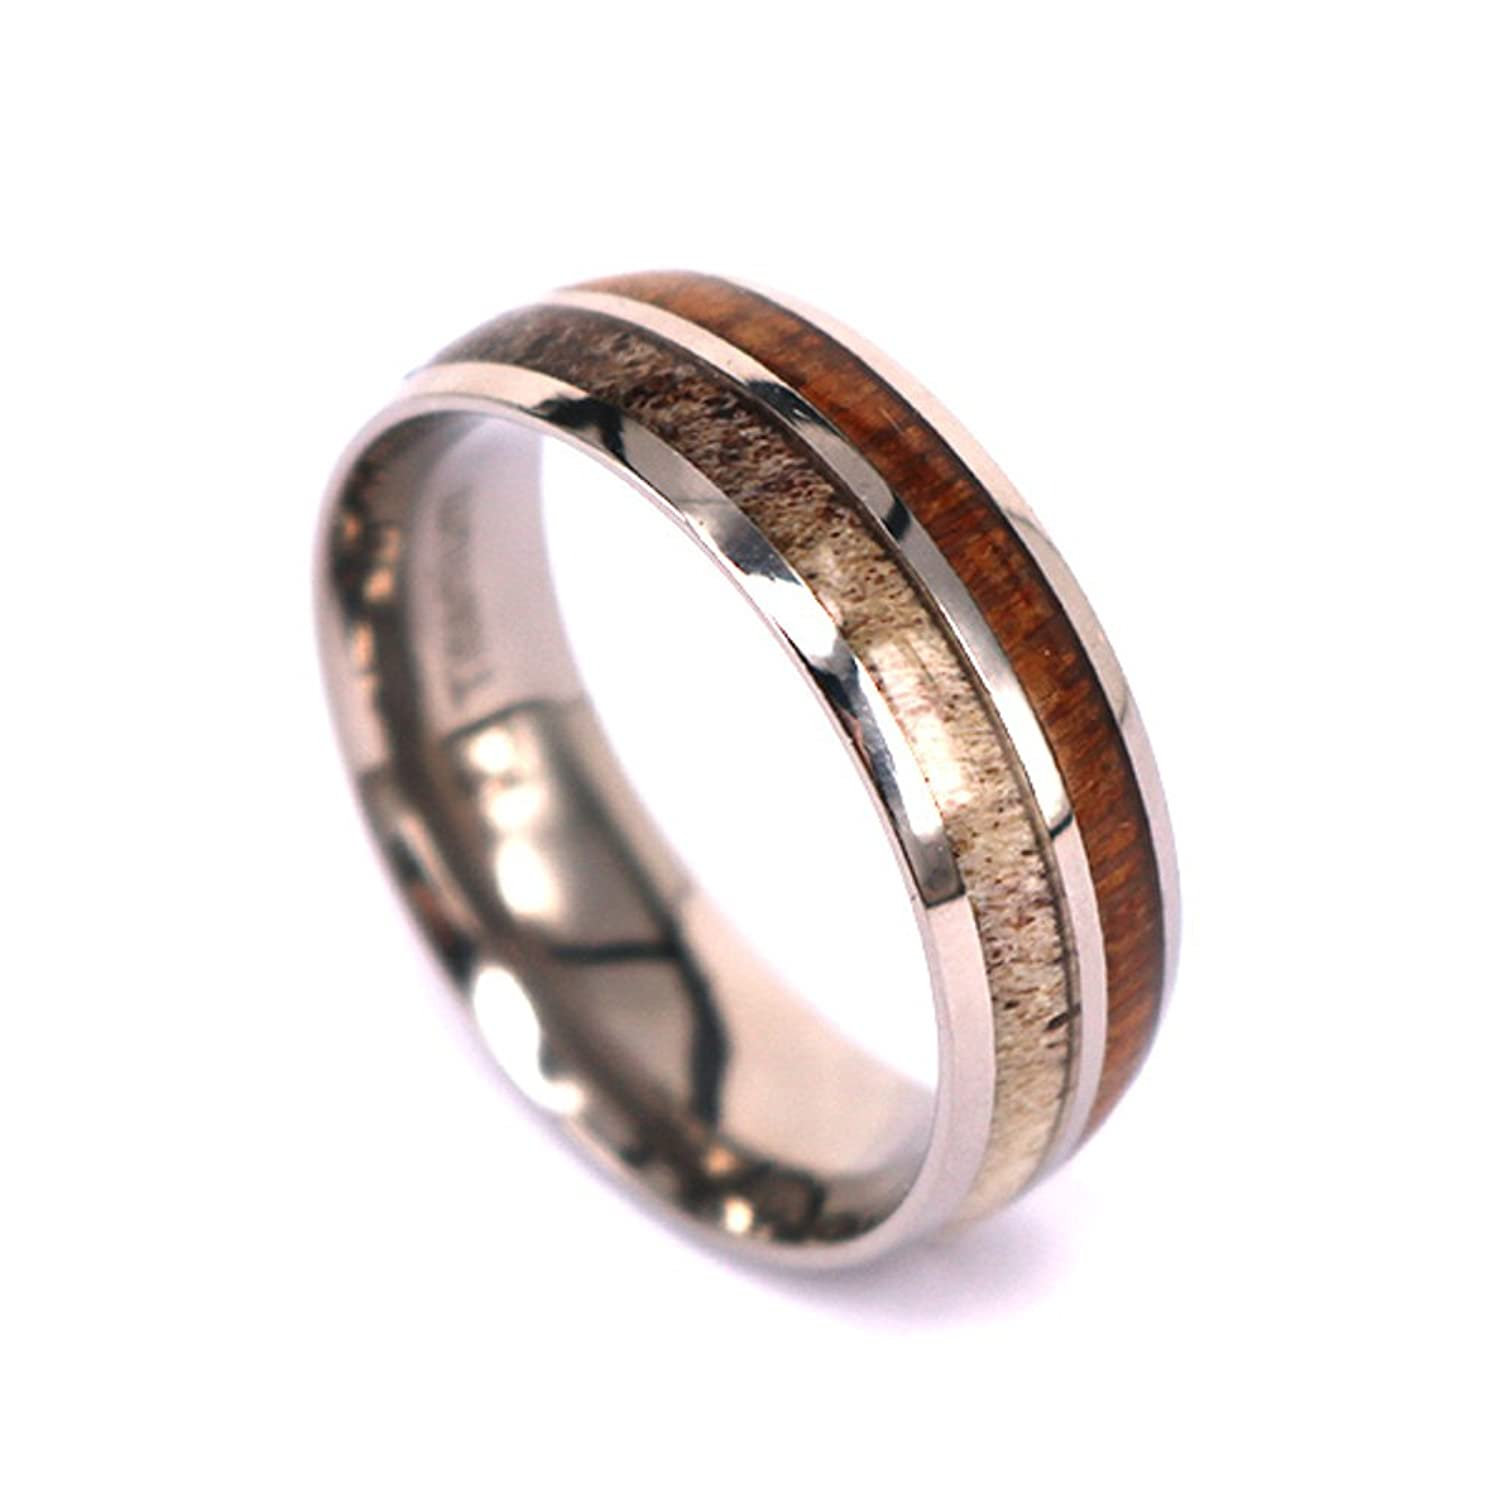 rings deer antler titanium camo ring by antlers hunting wedding product and